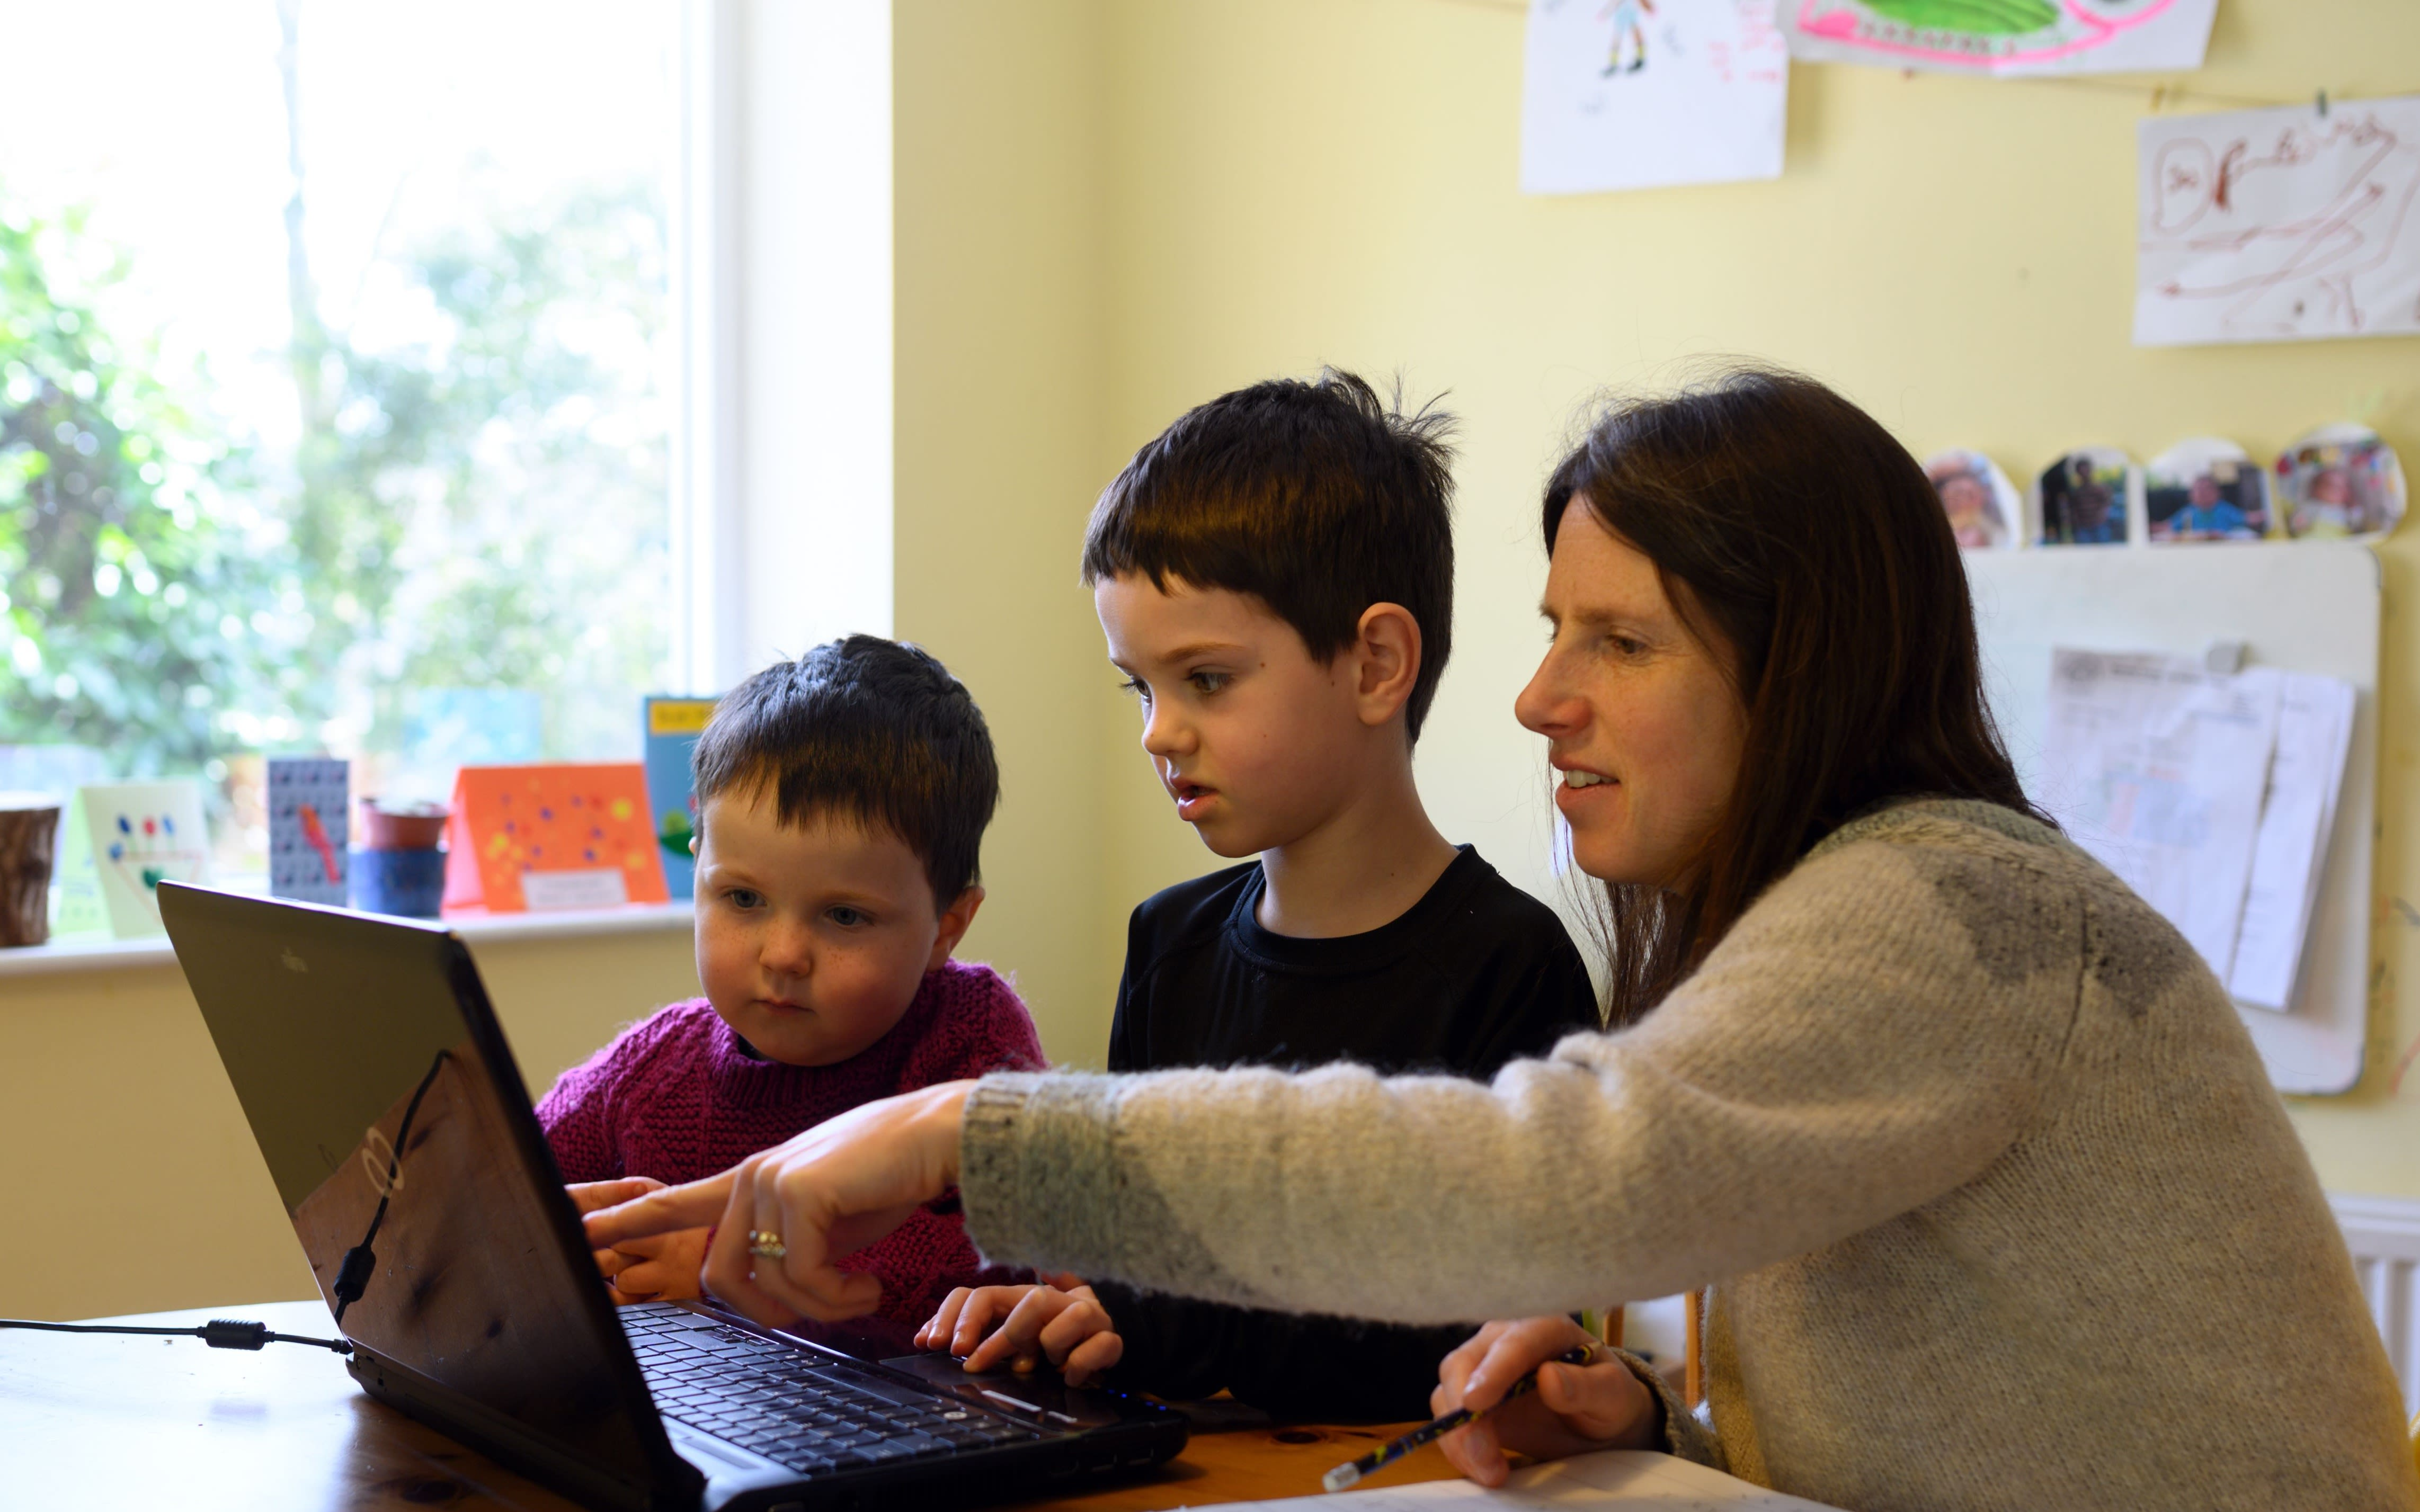 A mum helps her two sons with homeschooling